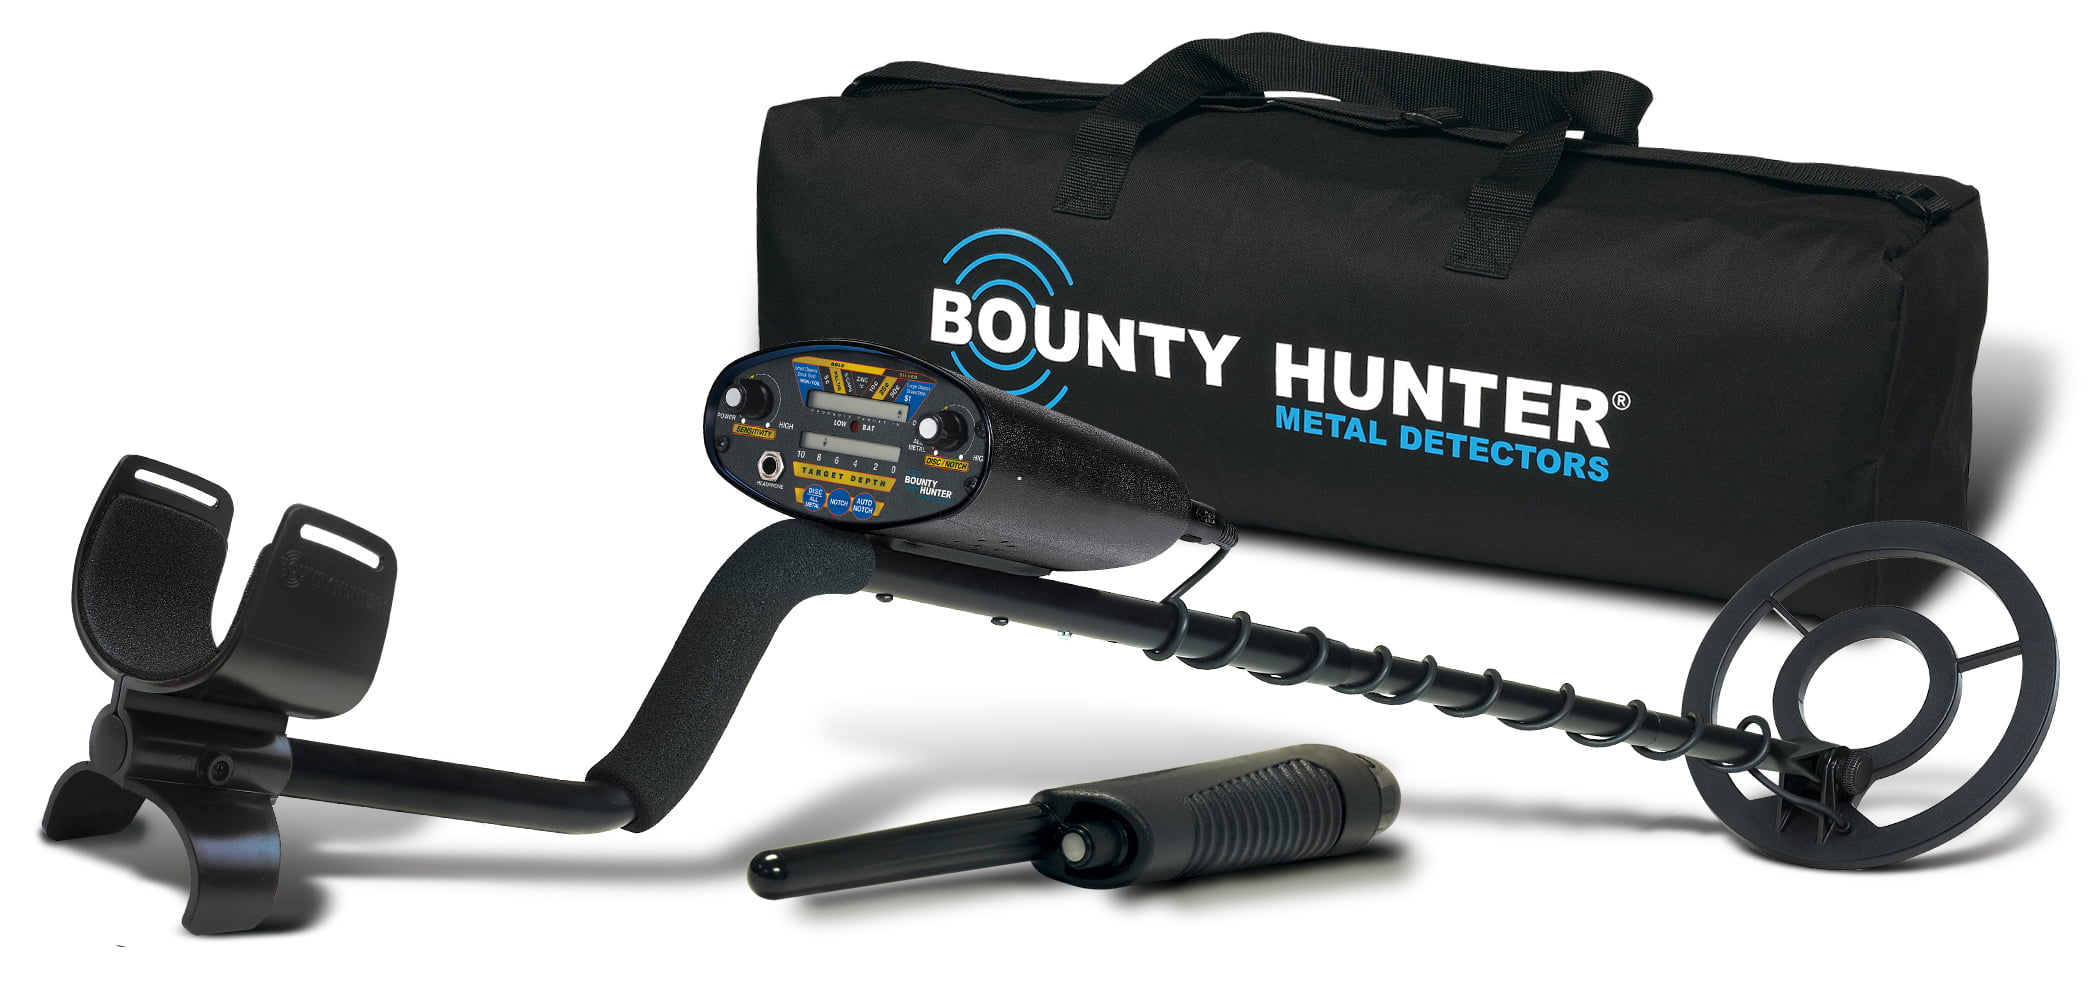 Bounty Hunter Quick Draw 2 Hobby Metal Detector with Bonus Pinpointer and Carry Bag by First Texas Products